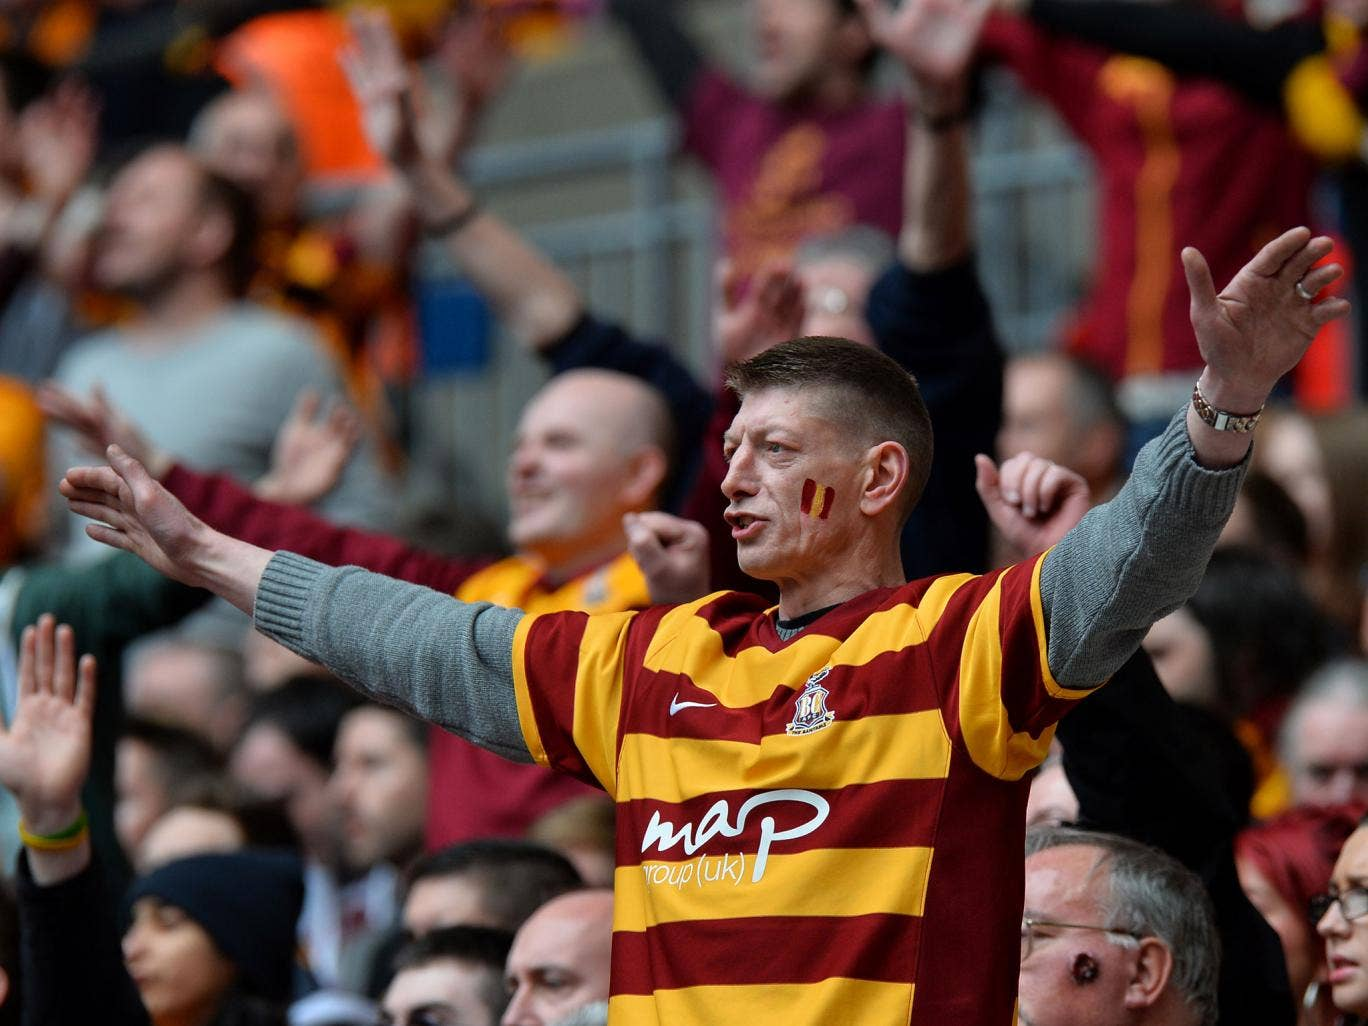 A Bradford fan watches as his team goes on to get promoted